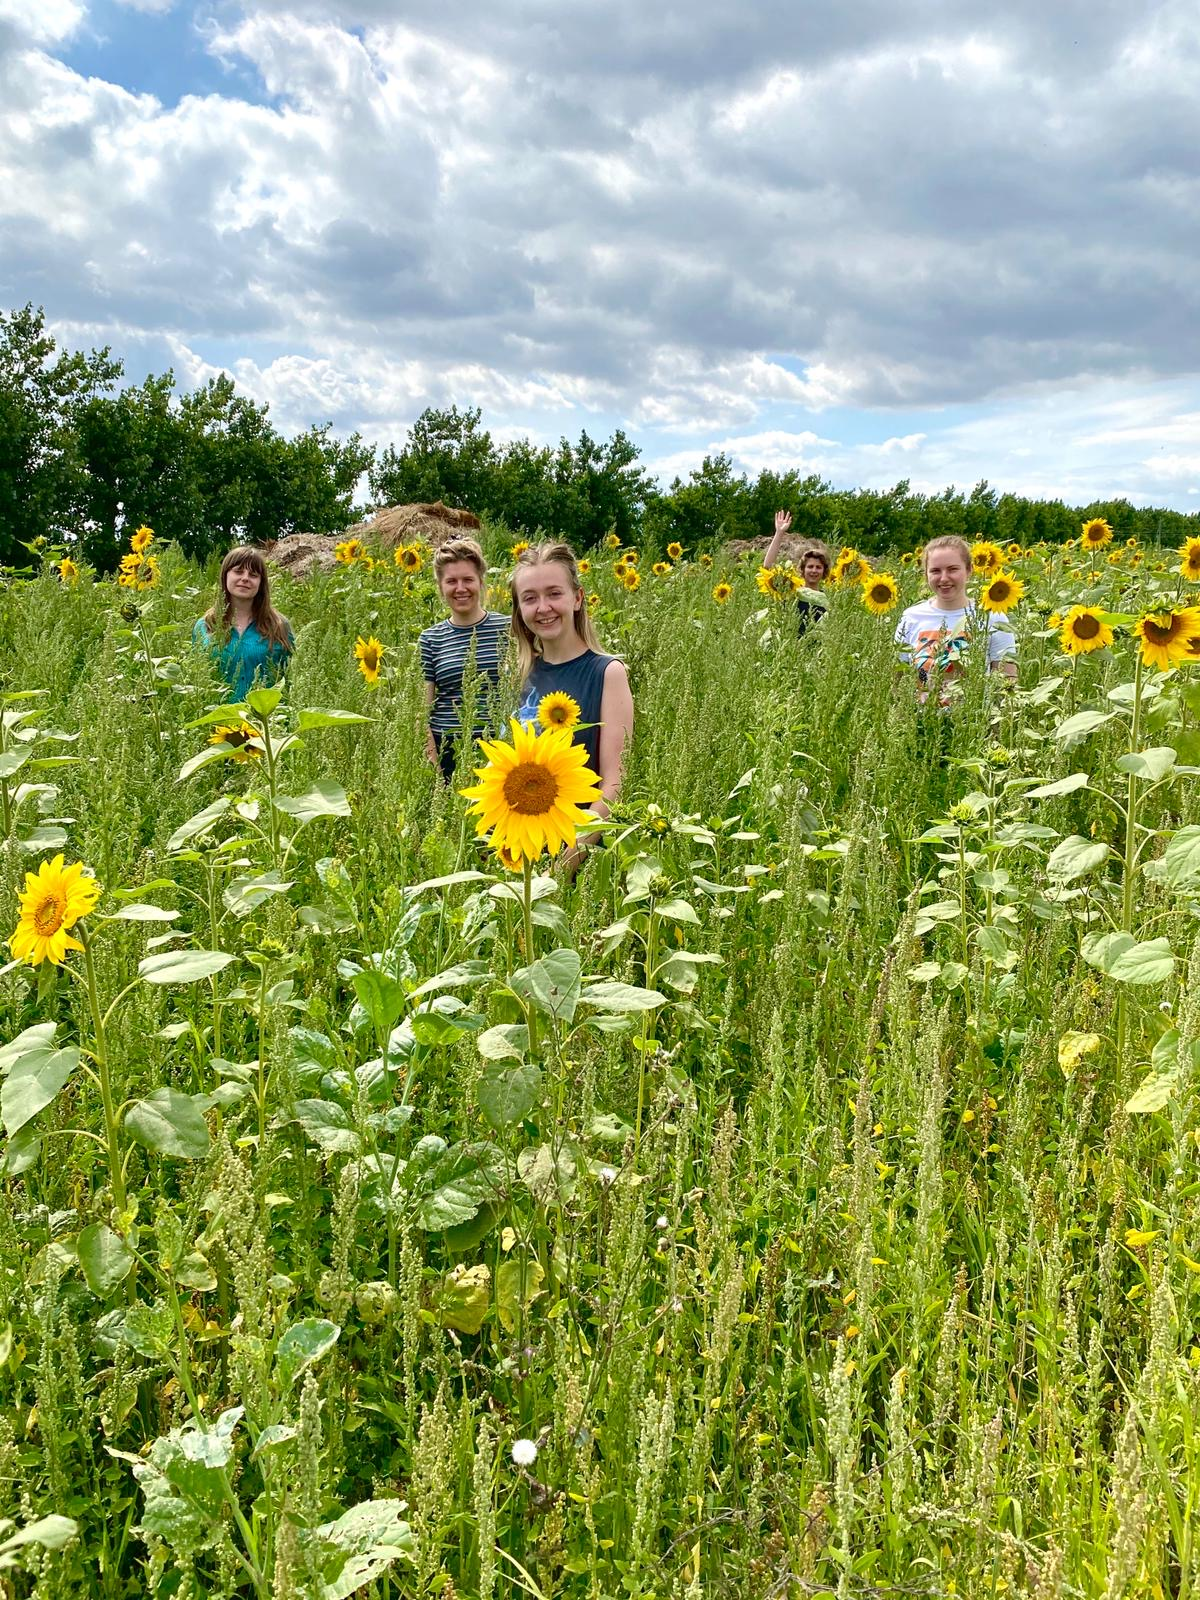 Bombus team in a field of sunflowers outside the Bombus studio